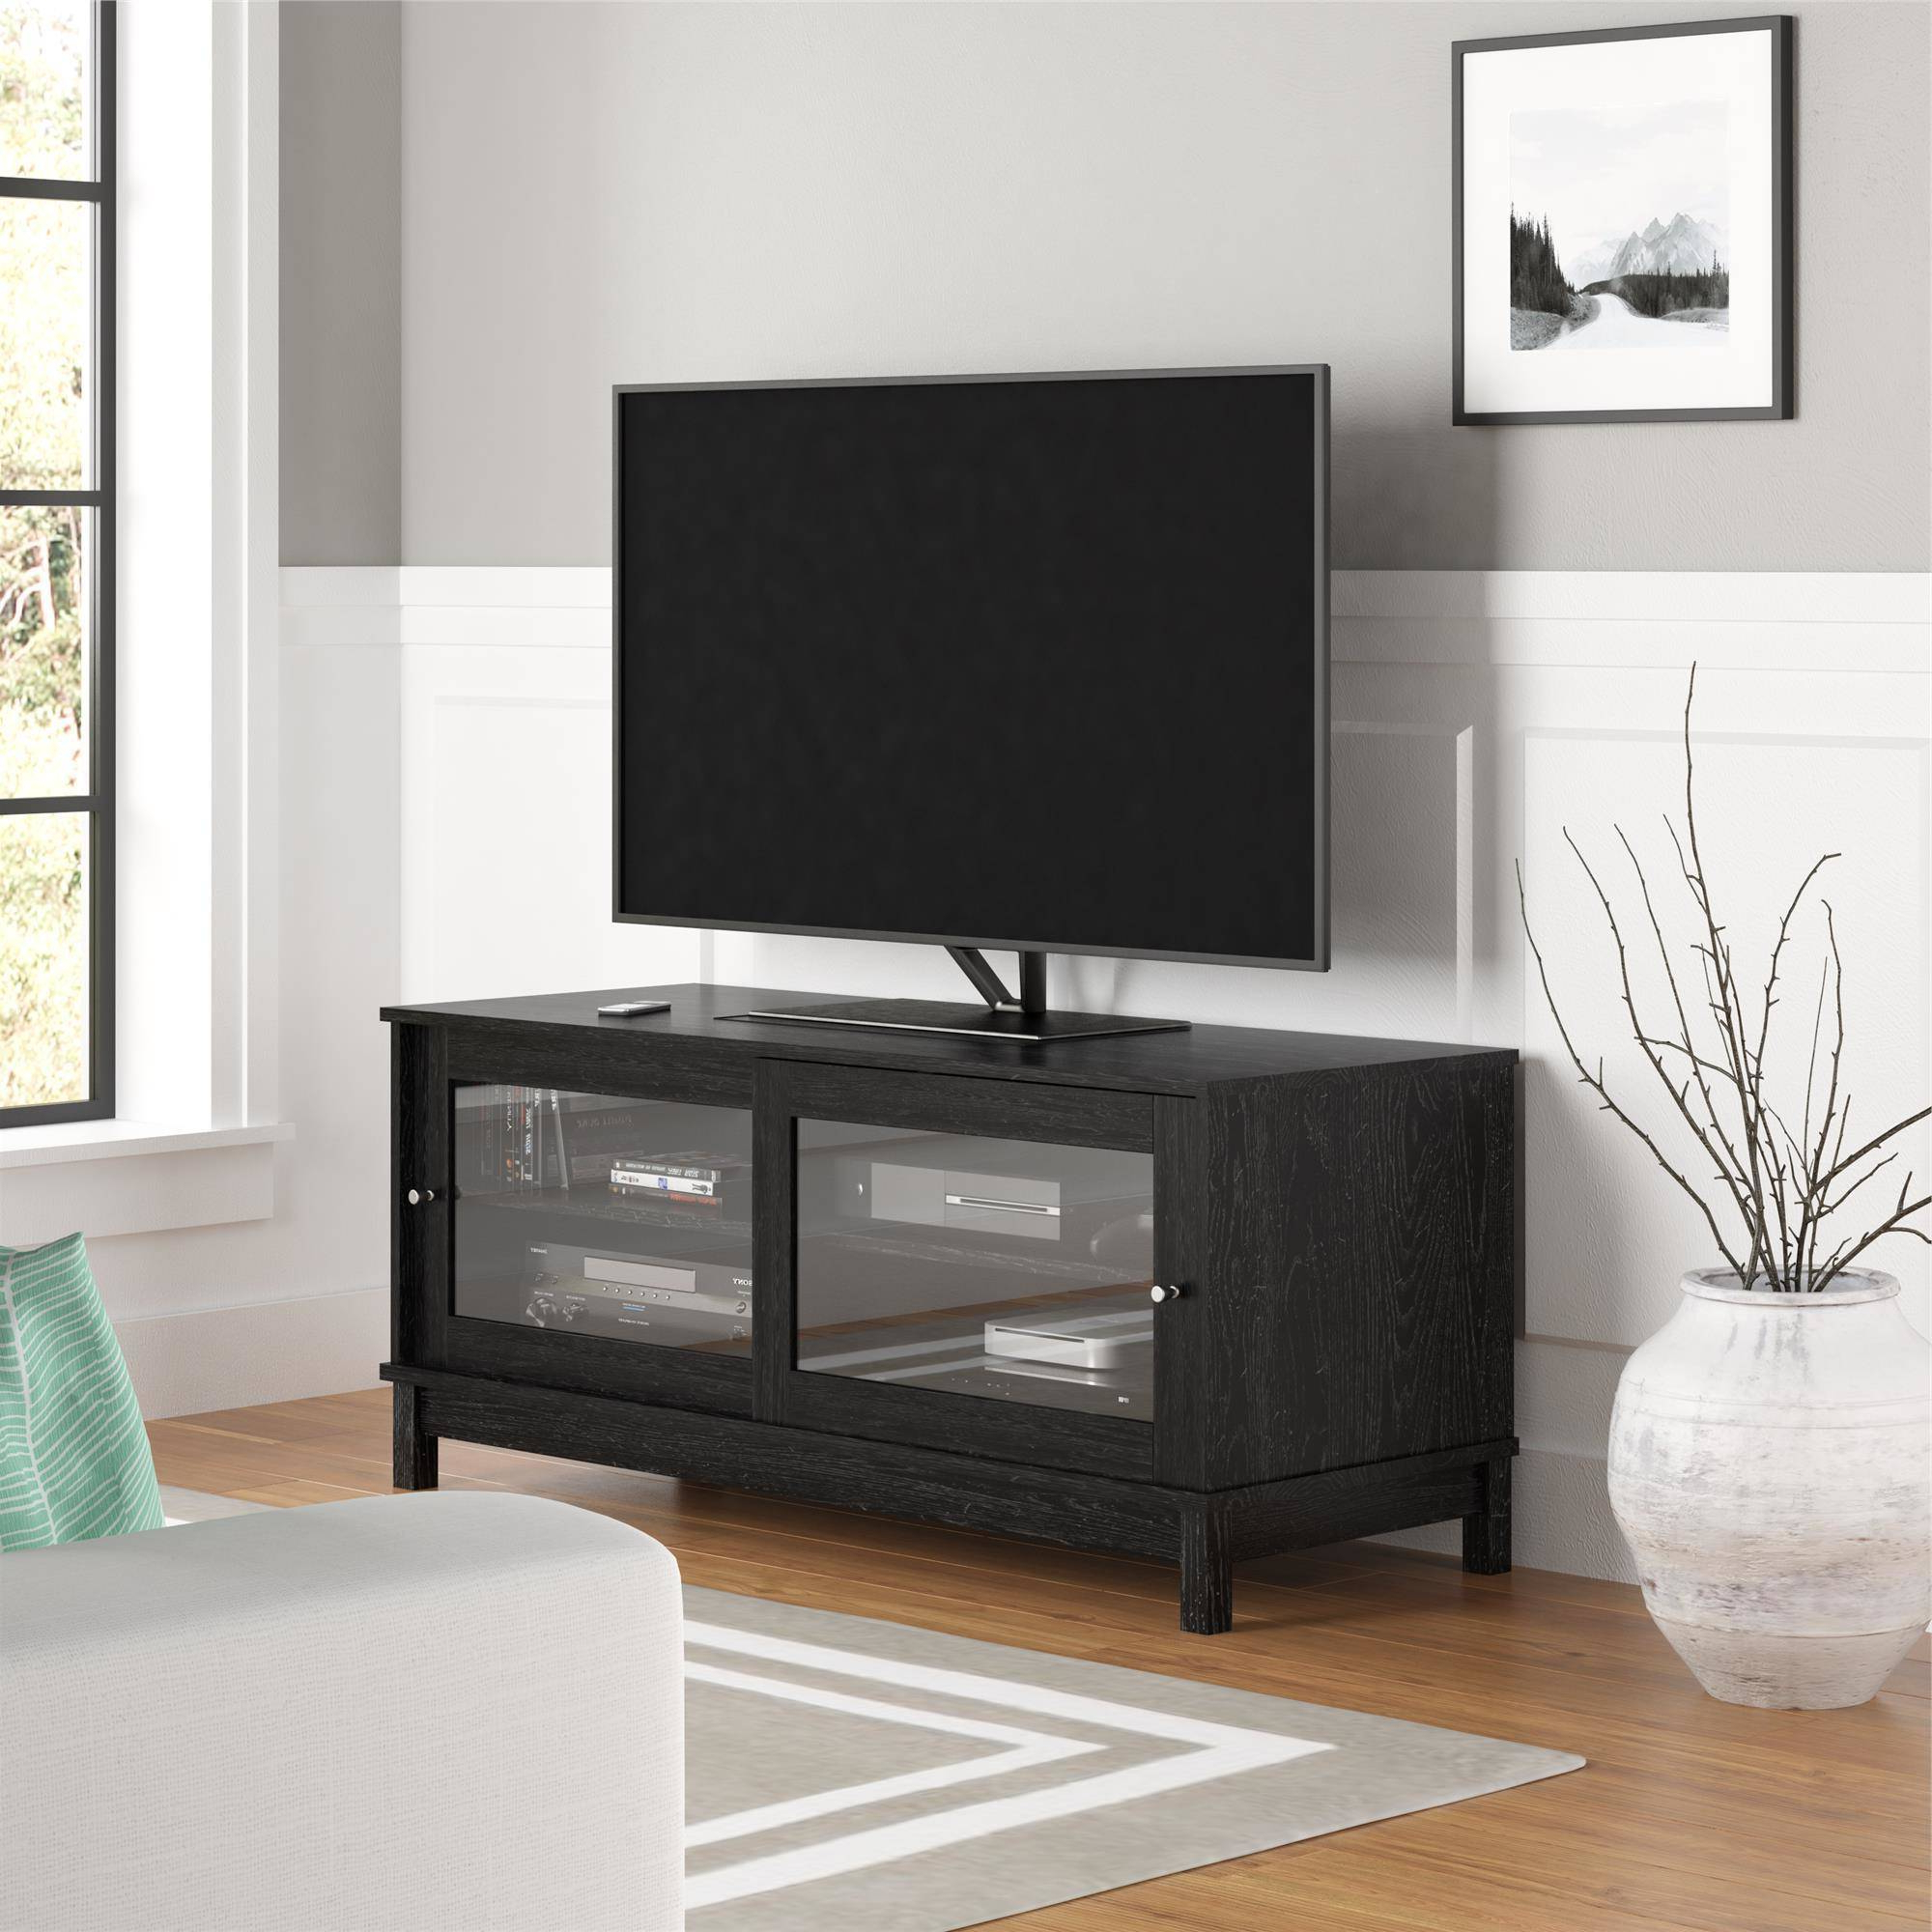 Home Entertainment Center Tv Stand Media Storage With With Famous Mainstays 3 Door Tv Stands Console In Multiple Colors (View 7 of 10)